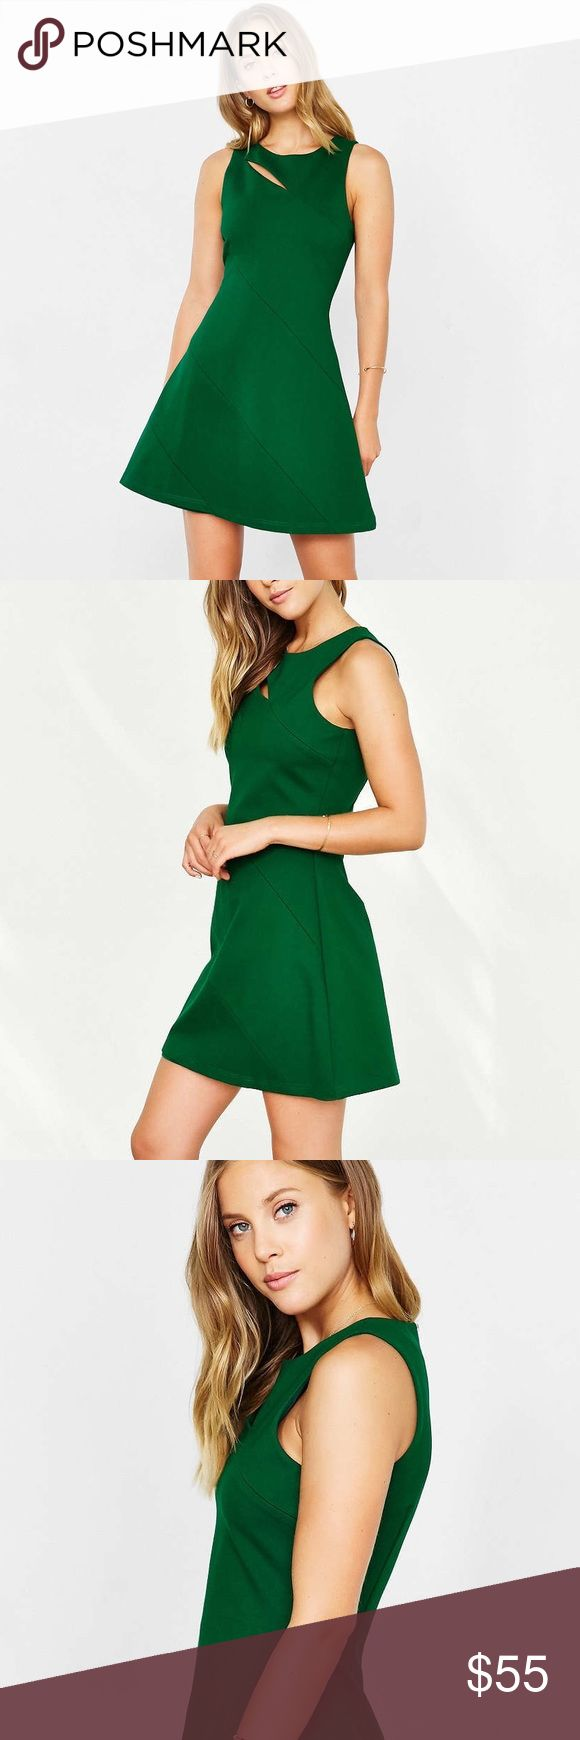 📱CYBER MONDAY📱Chandi & Lia pontè a line dress Beautifully structured kelly green dress from Urban Outfitters. Super stretchy! New without tags. Urban Outfitters Dresses Mini